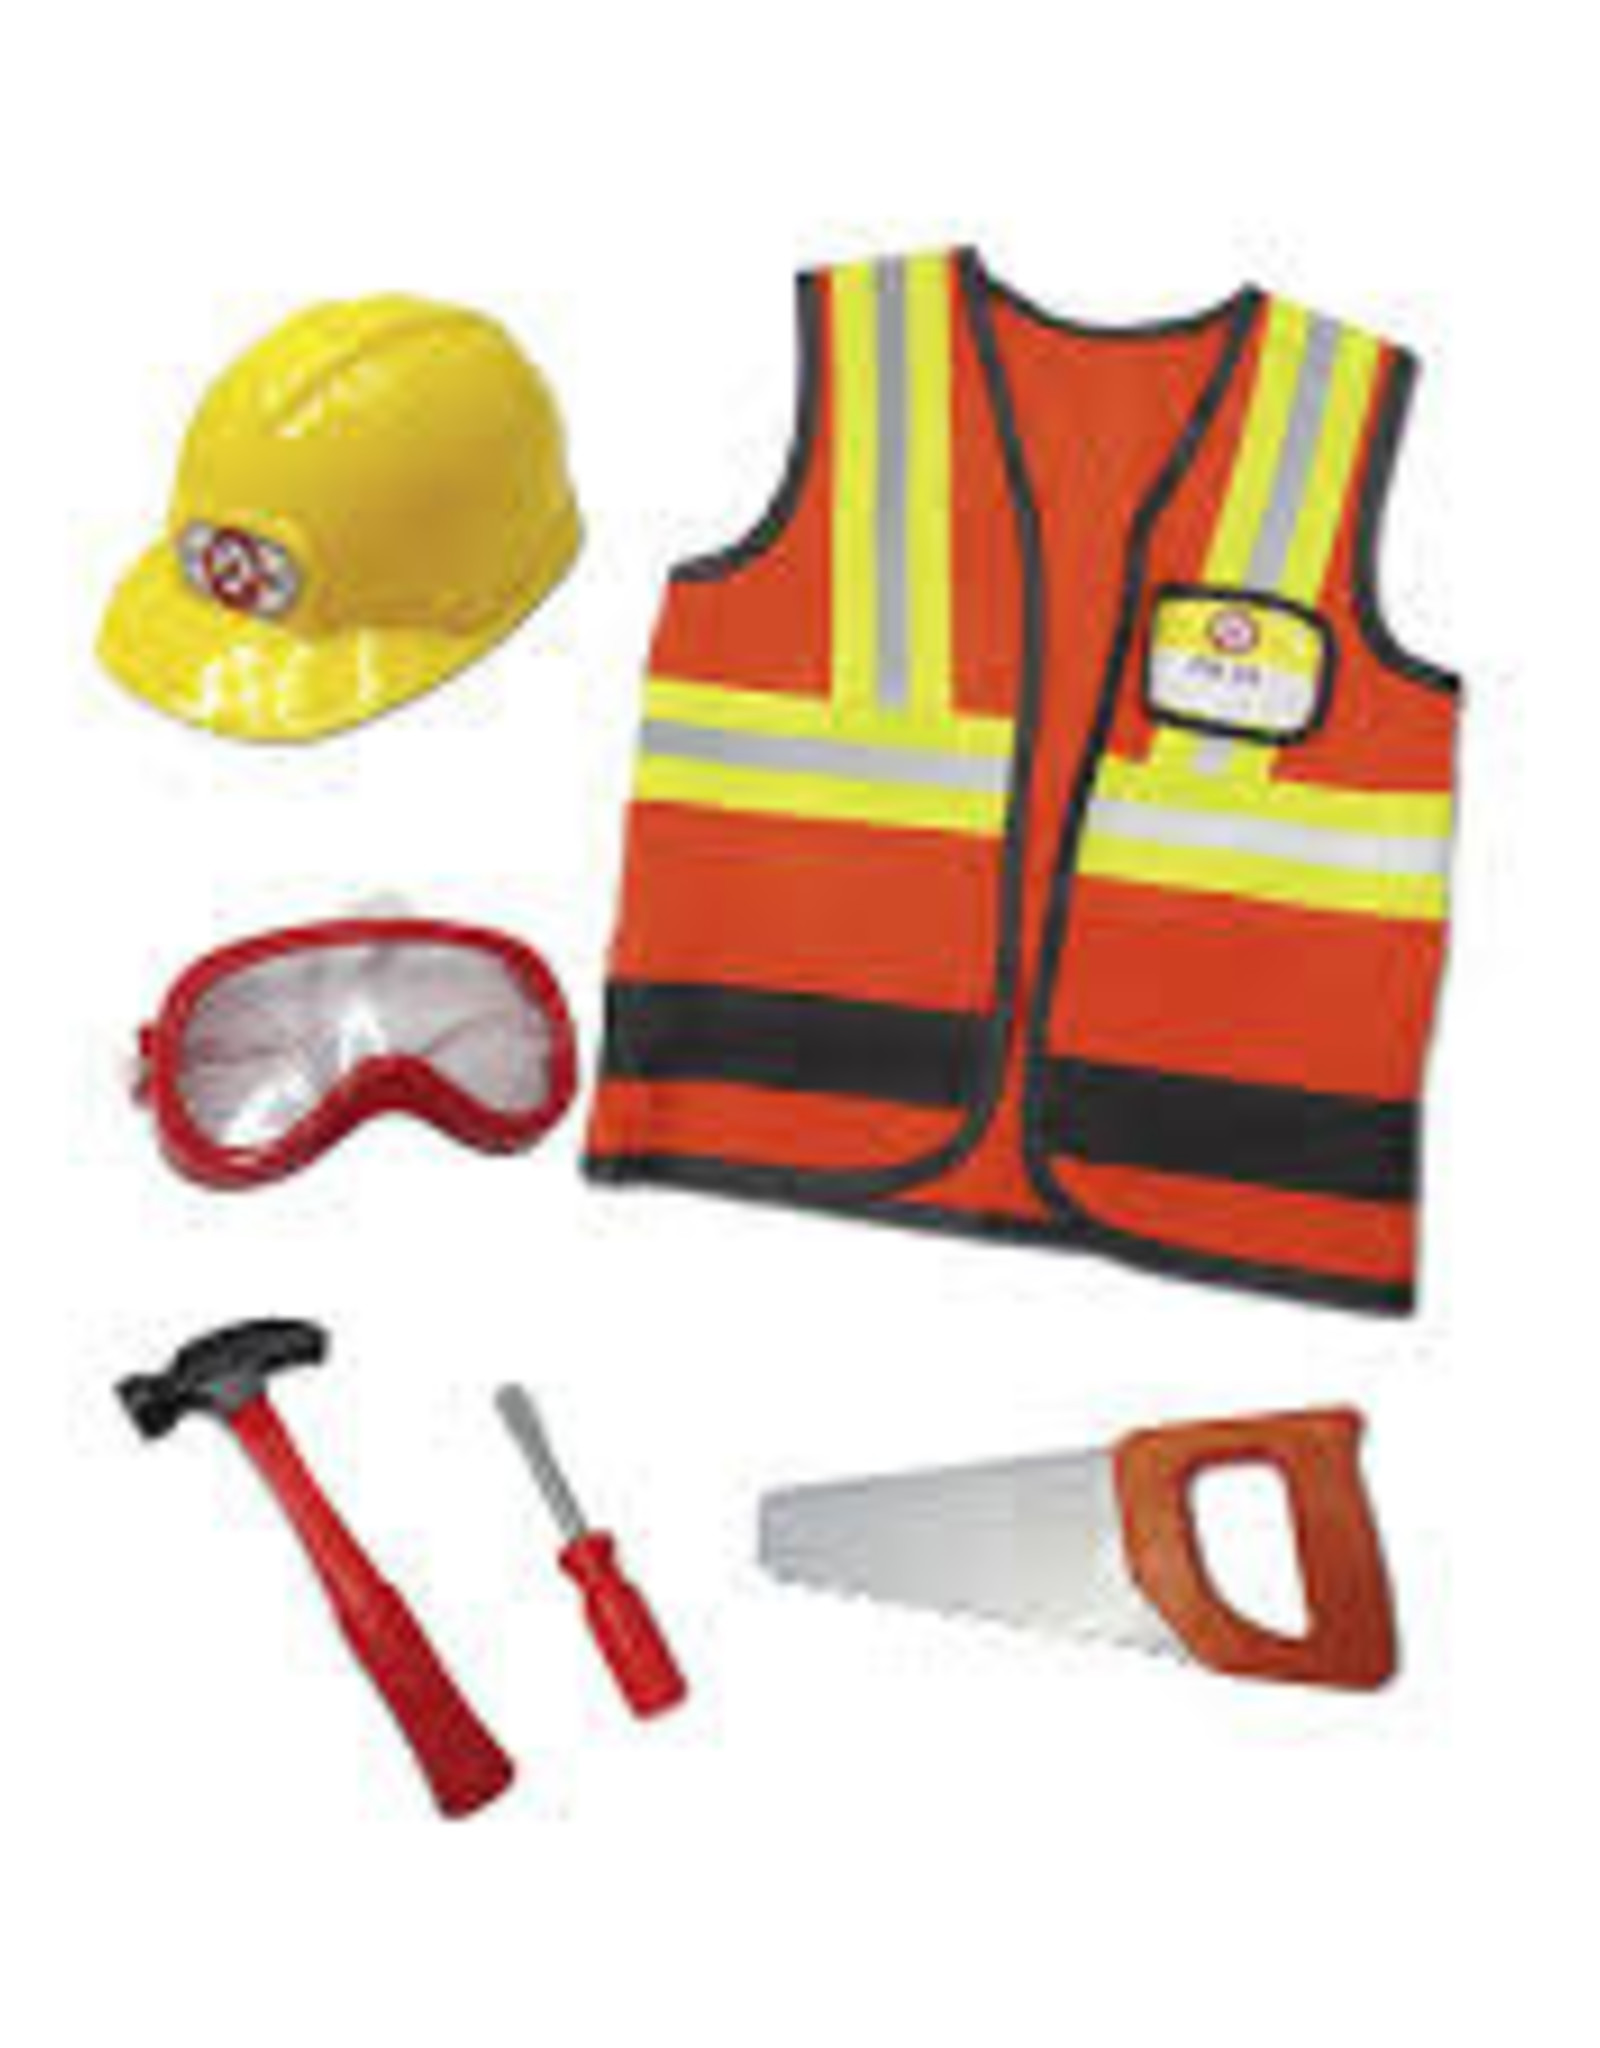 Creative Education Construction Worker with Accessories: Size 5-6